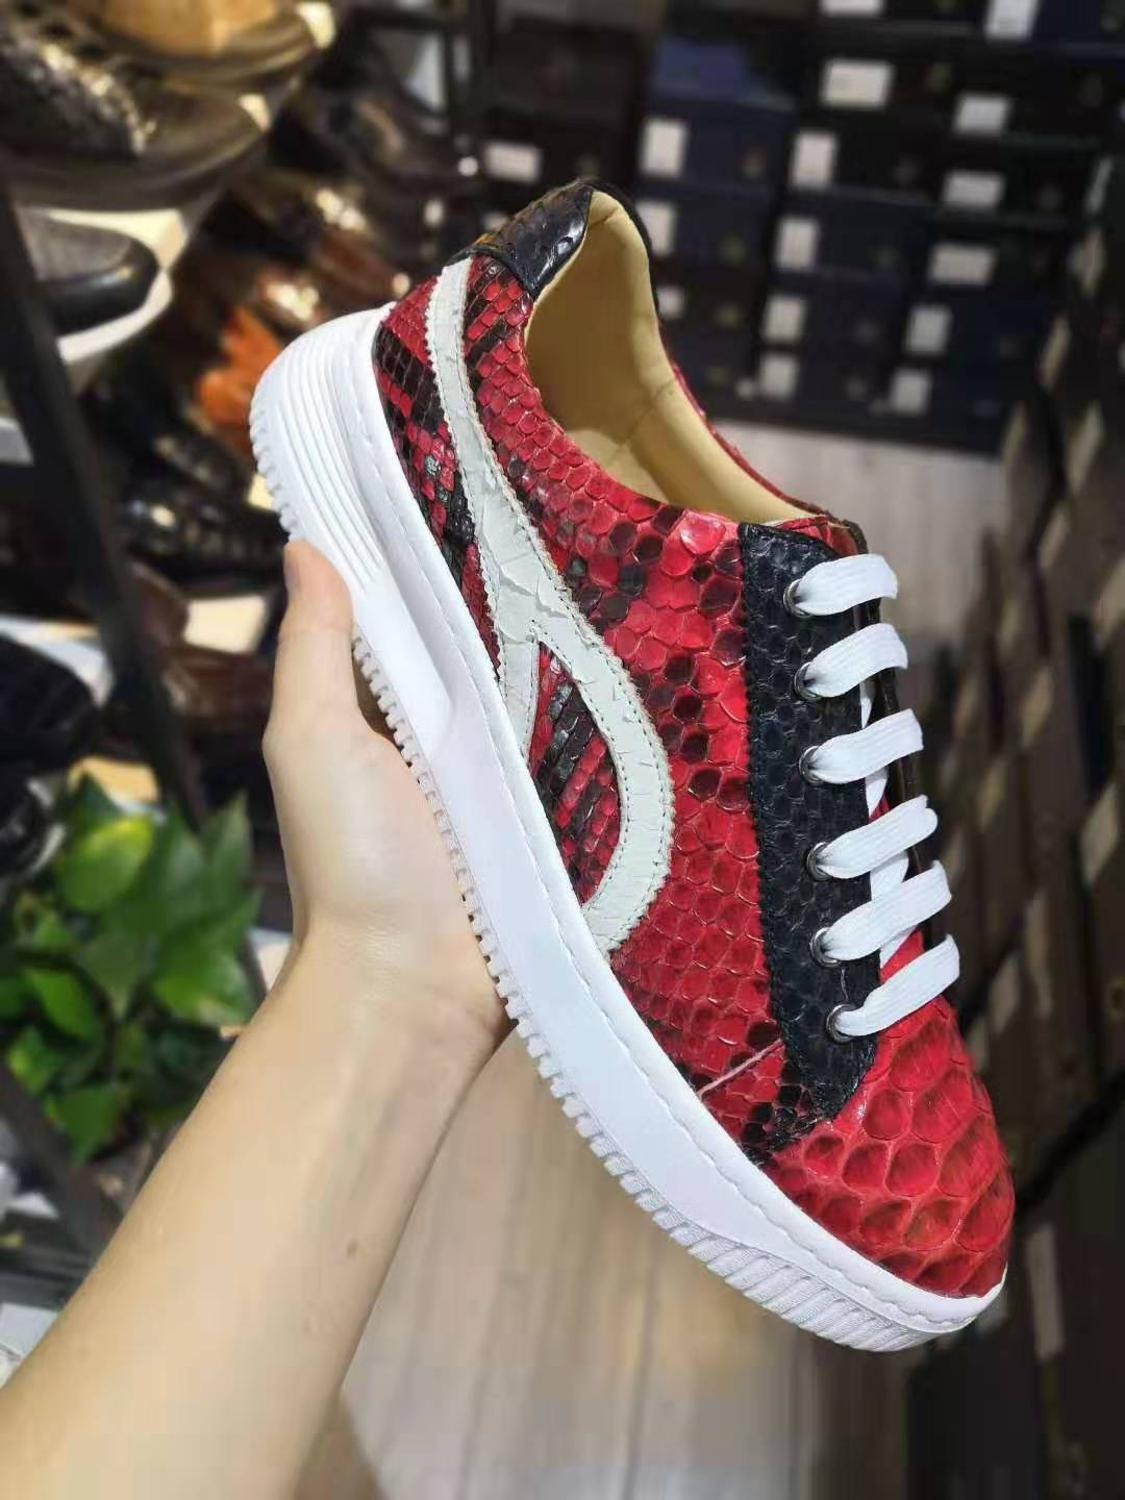 2019 new production 100% real genuine python skin snake leather fashion sneaker shoe with genuine cowhide skin lining